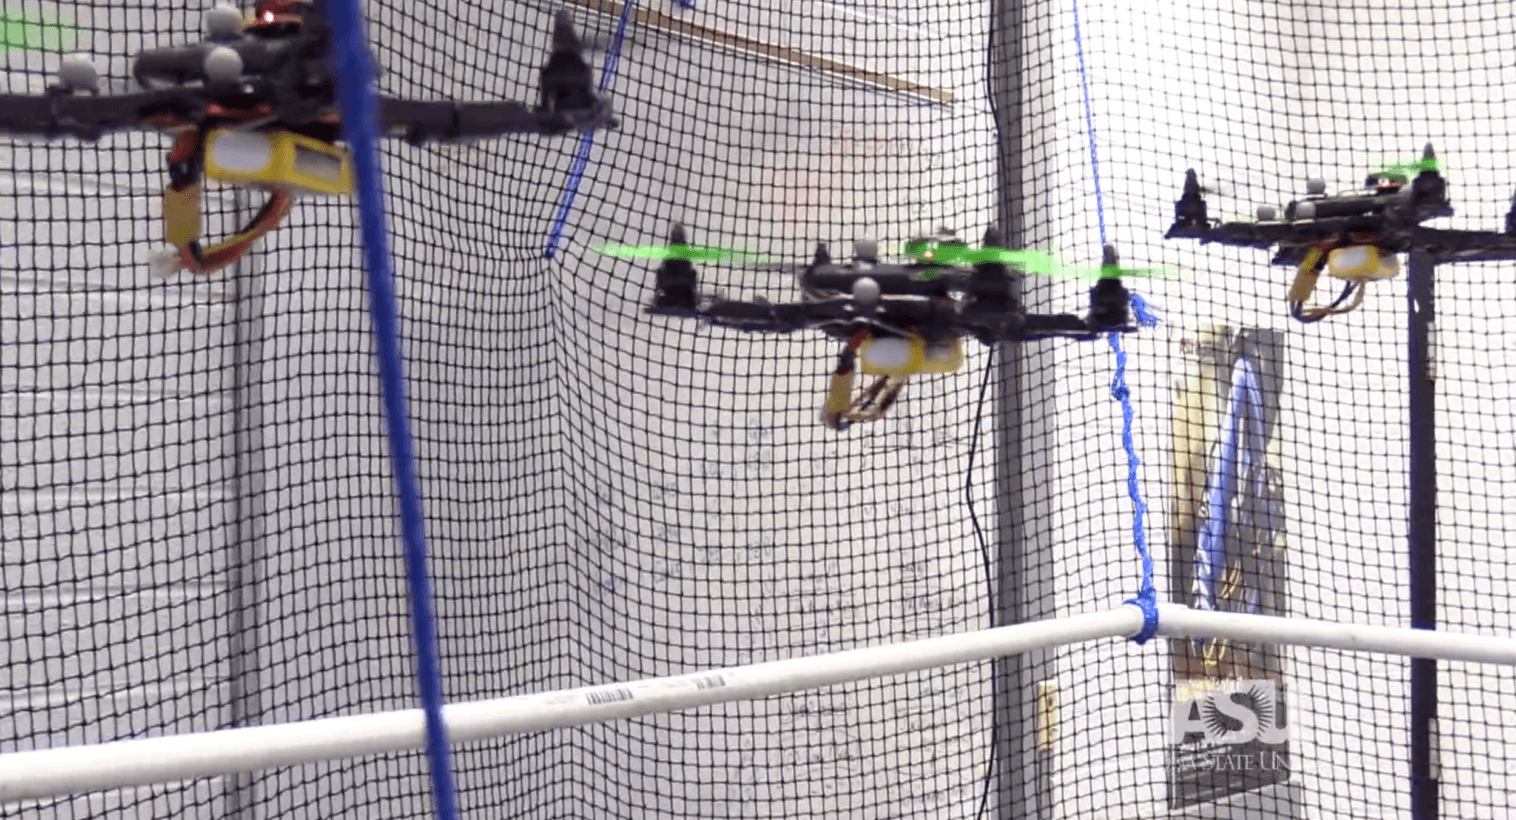 This cutting-edge technology lets you control multiple drones with your mind